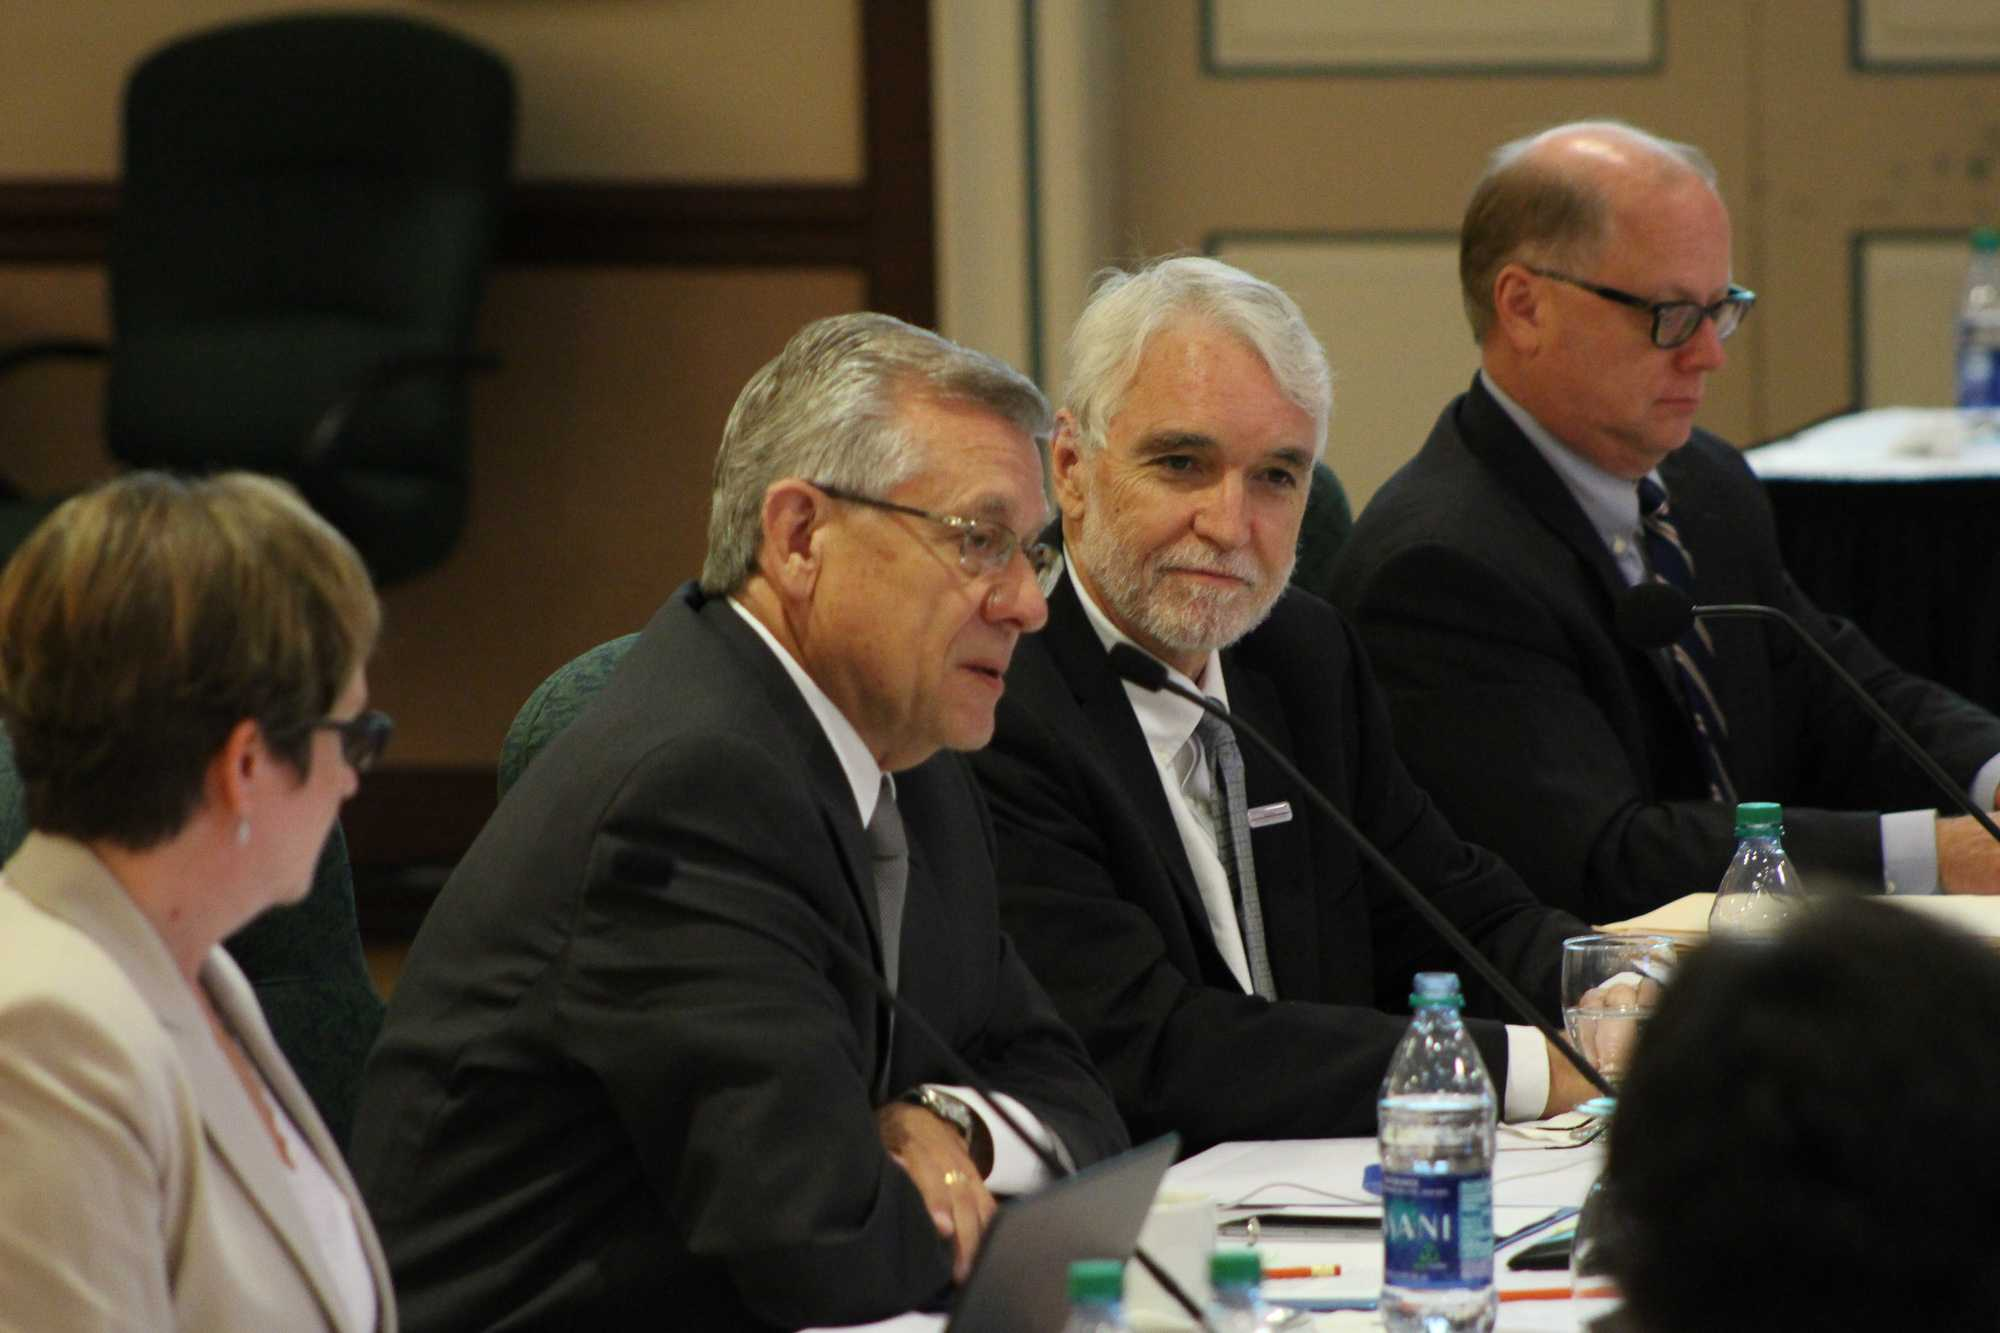 Chairman of the Board Edward L. McMillan and President Timothy Killeen attend the Board of Trustees meeting at the Illini Union on Sept. 8. The Editorial Board is concerned that the University is deviating away from its mission with new intiatives to increase enrollment.